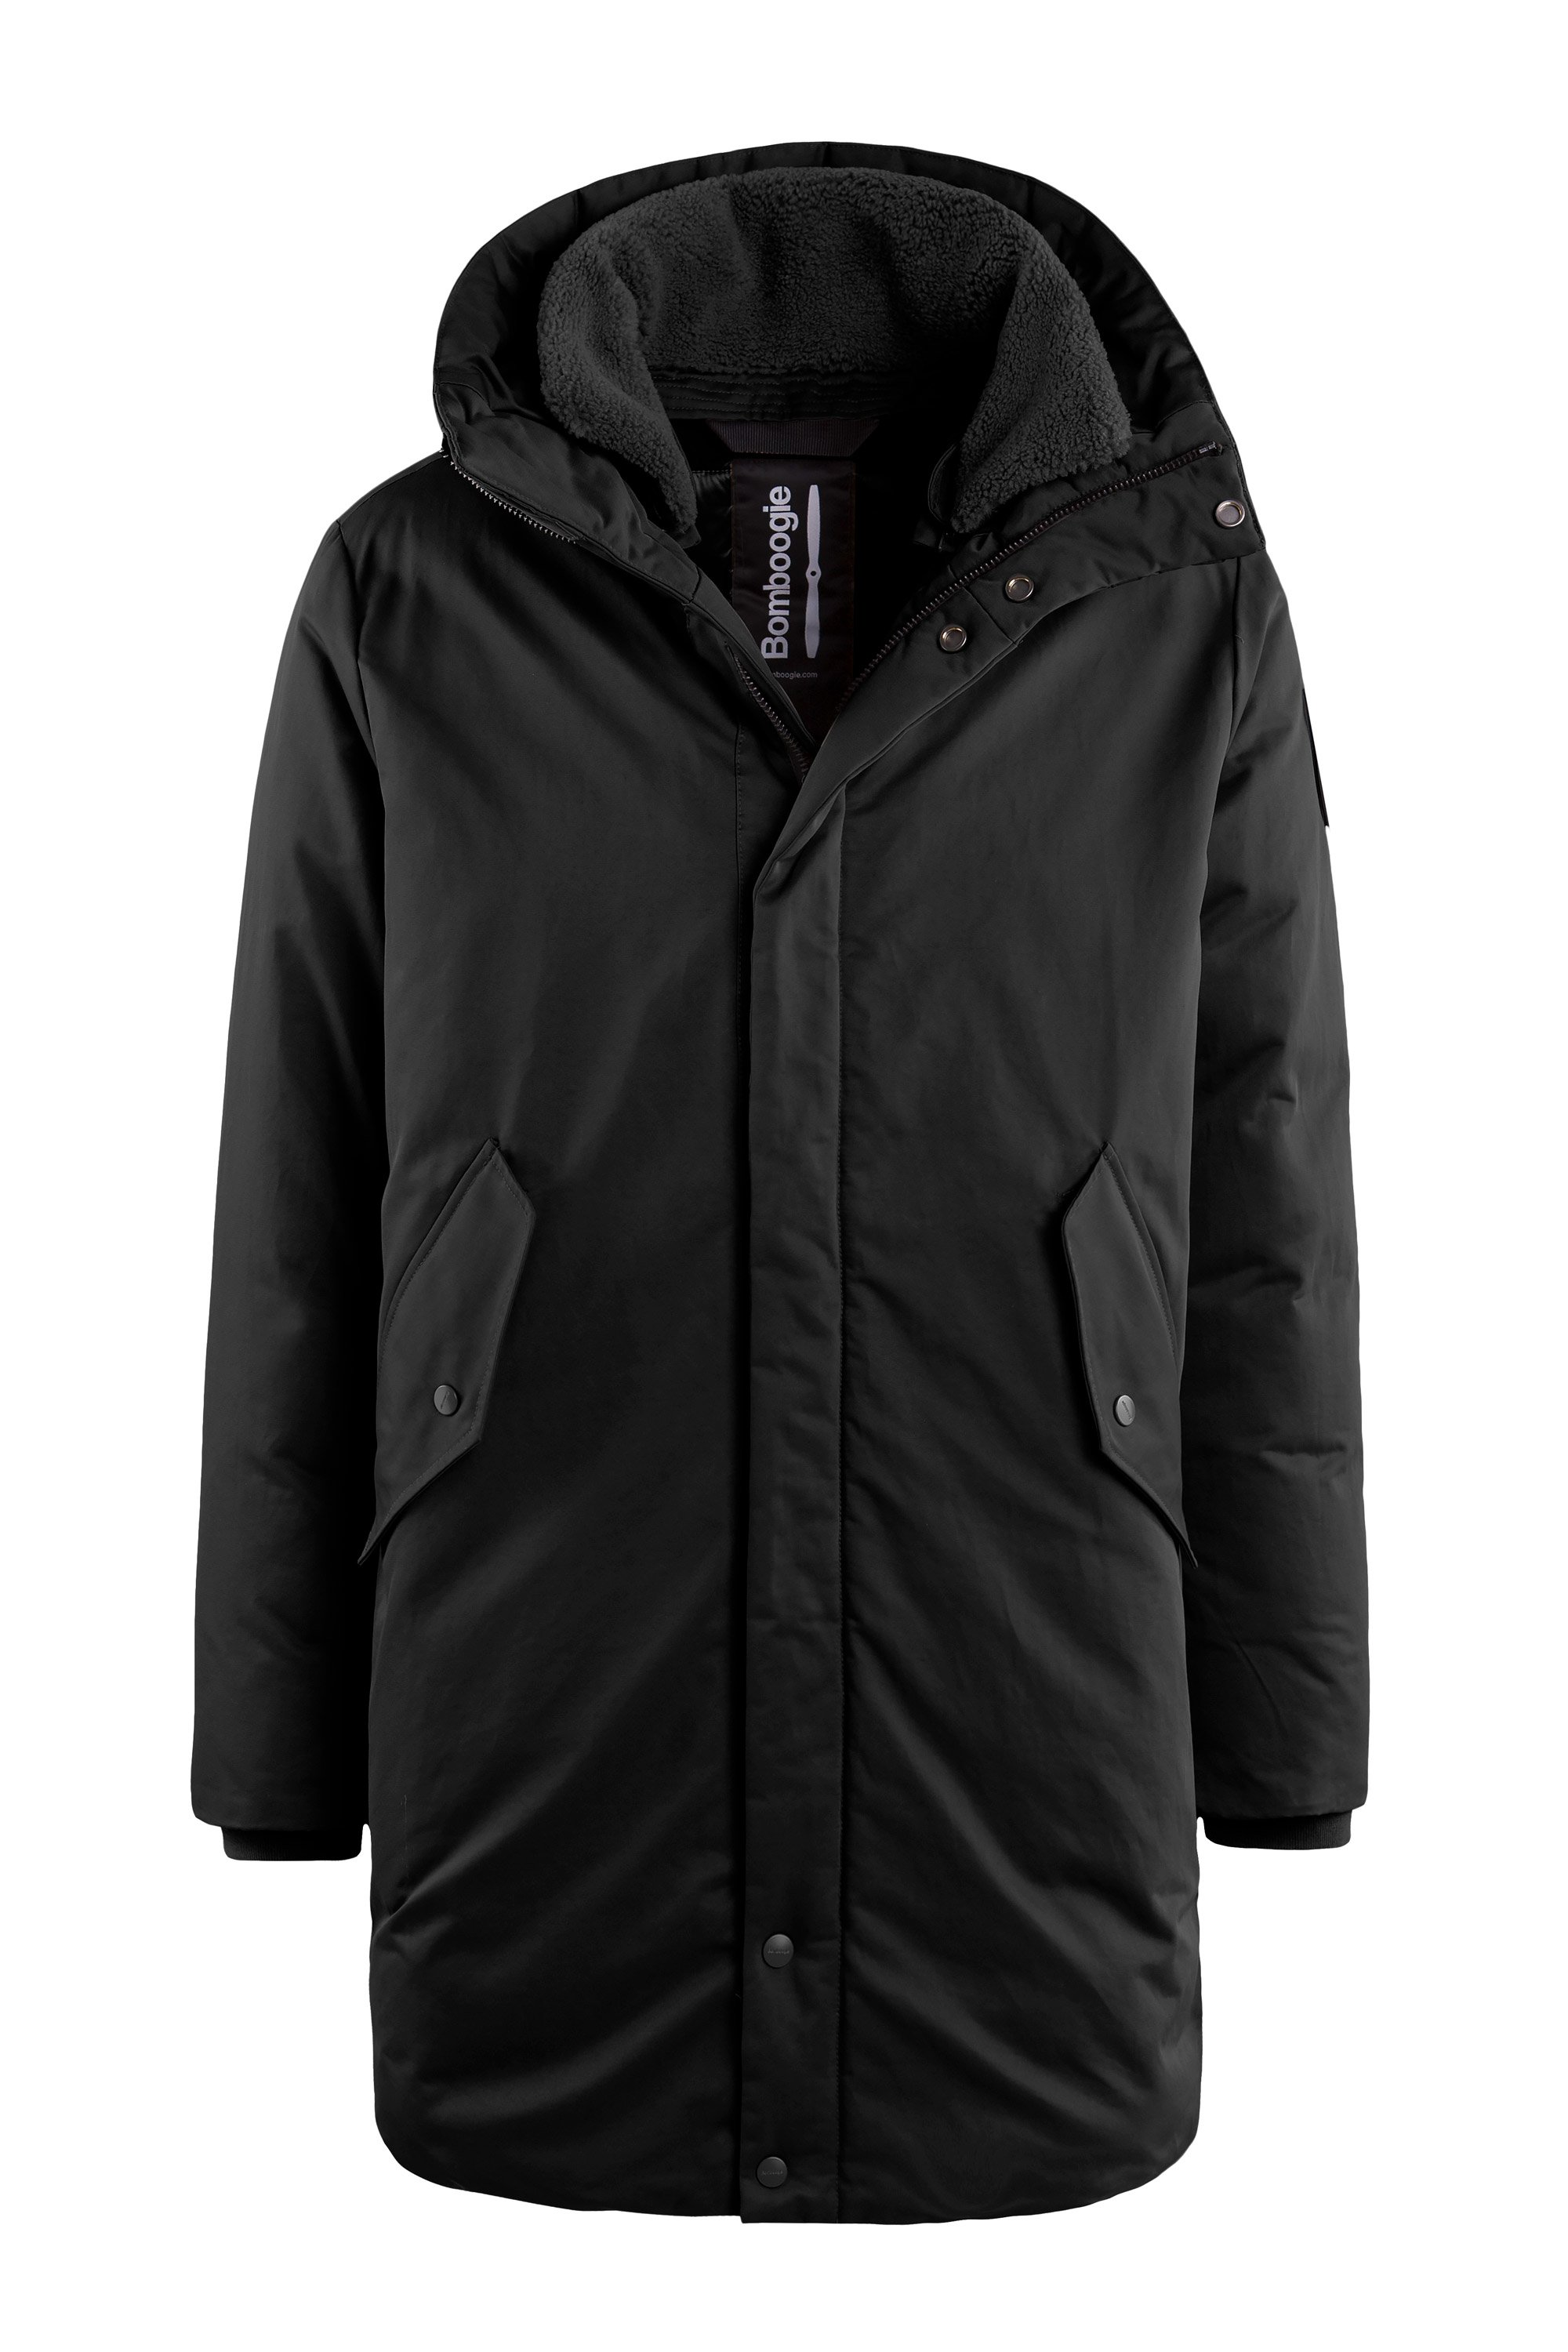 Long coat with visor PrimaLoft® PowerplumeTM padding